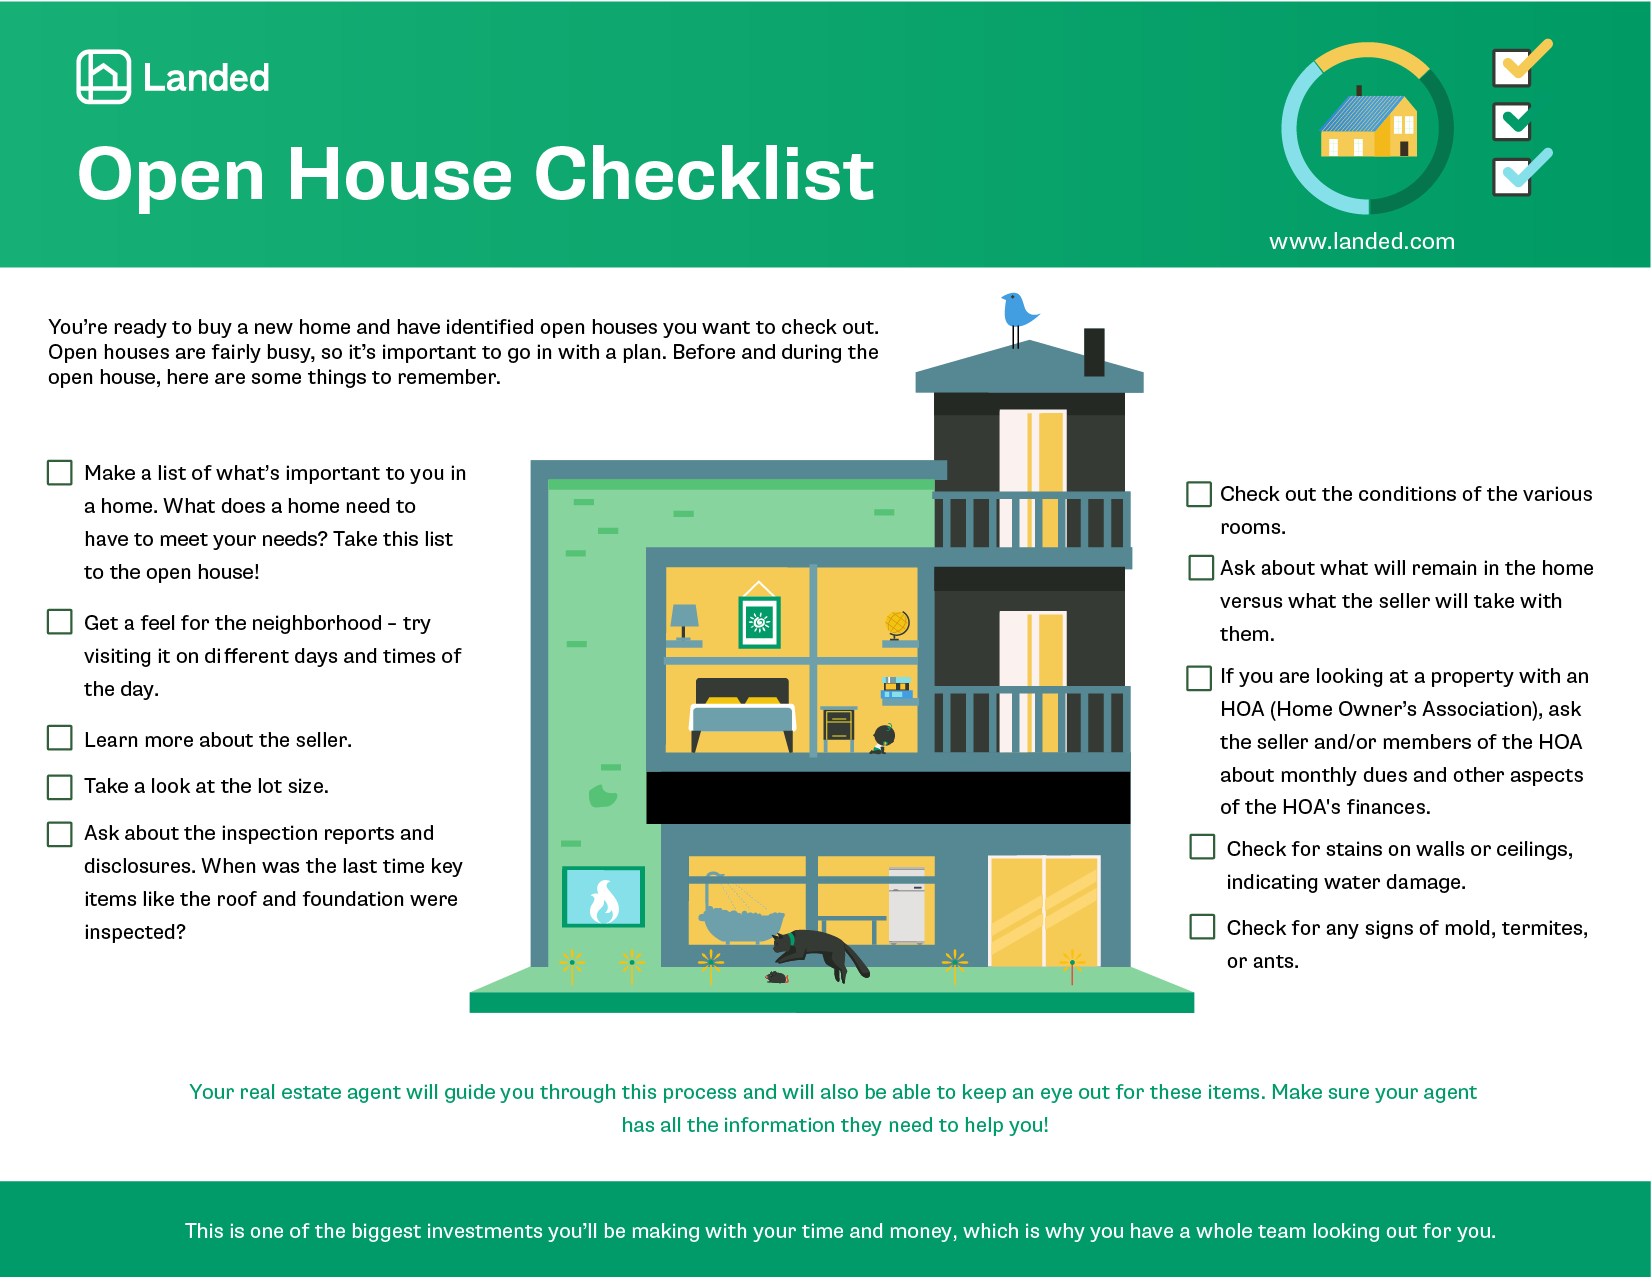 open house checklist (new)